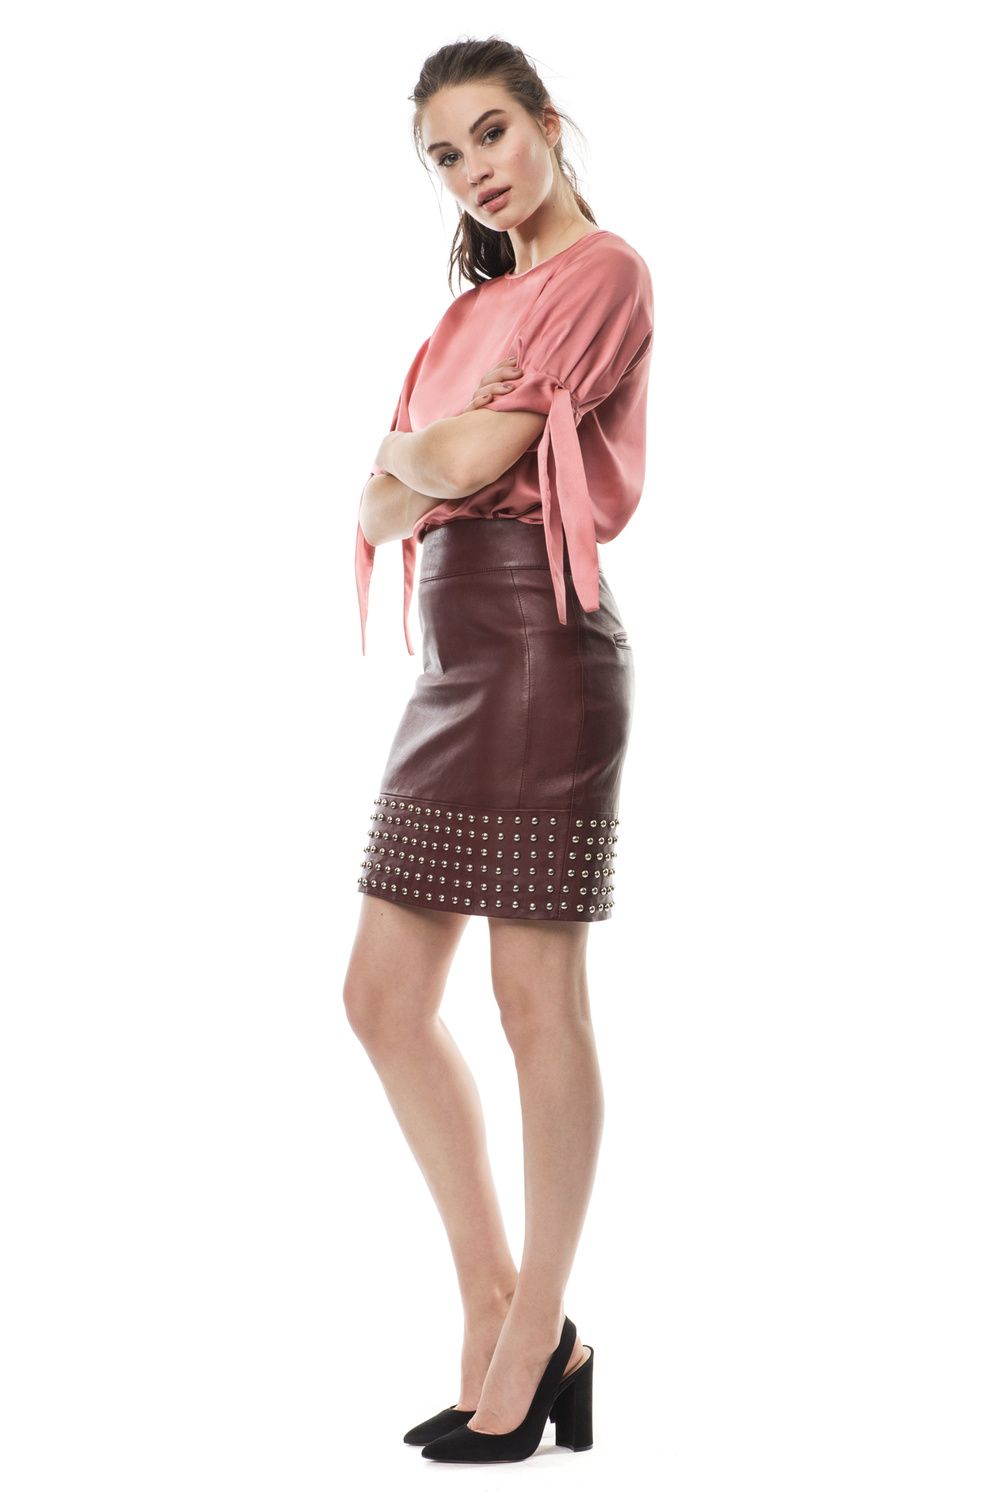 Aya studded leather skirt